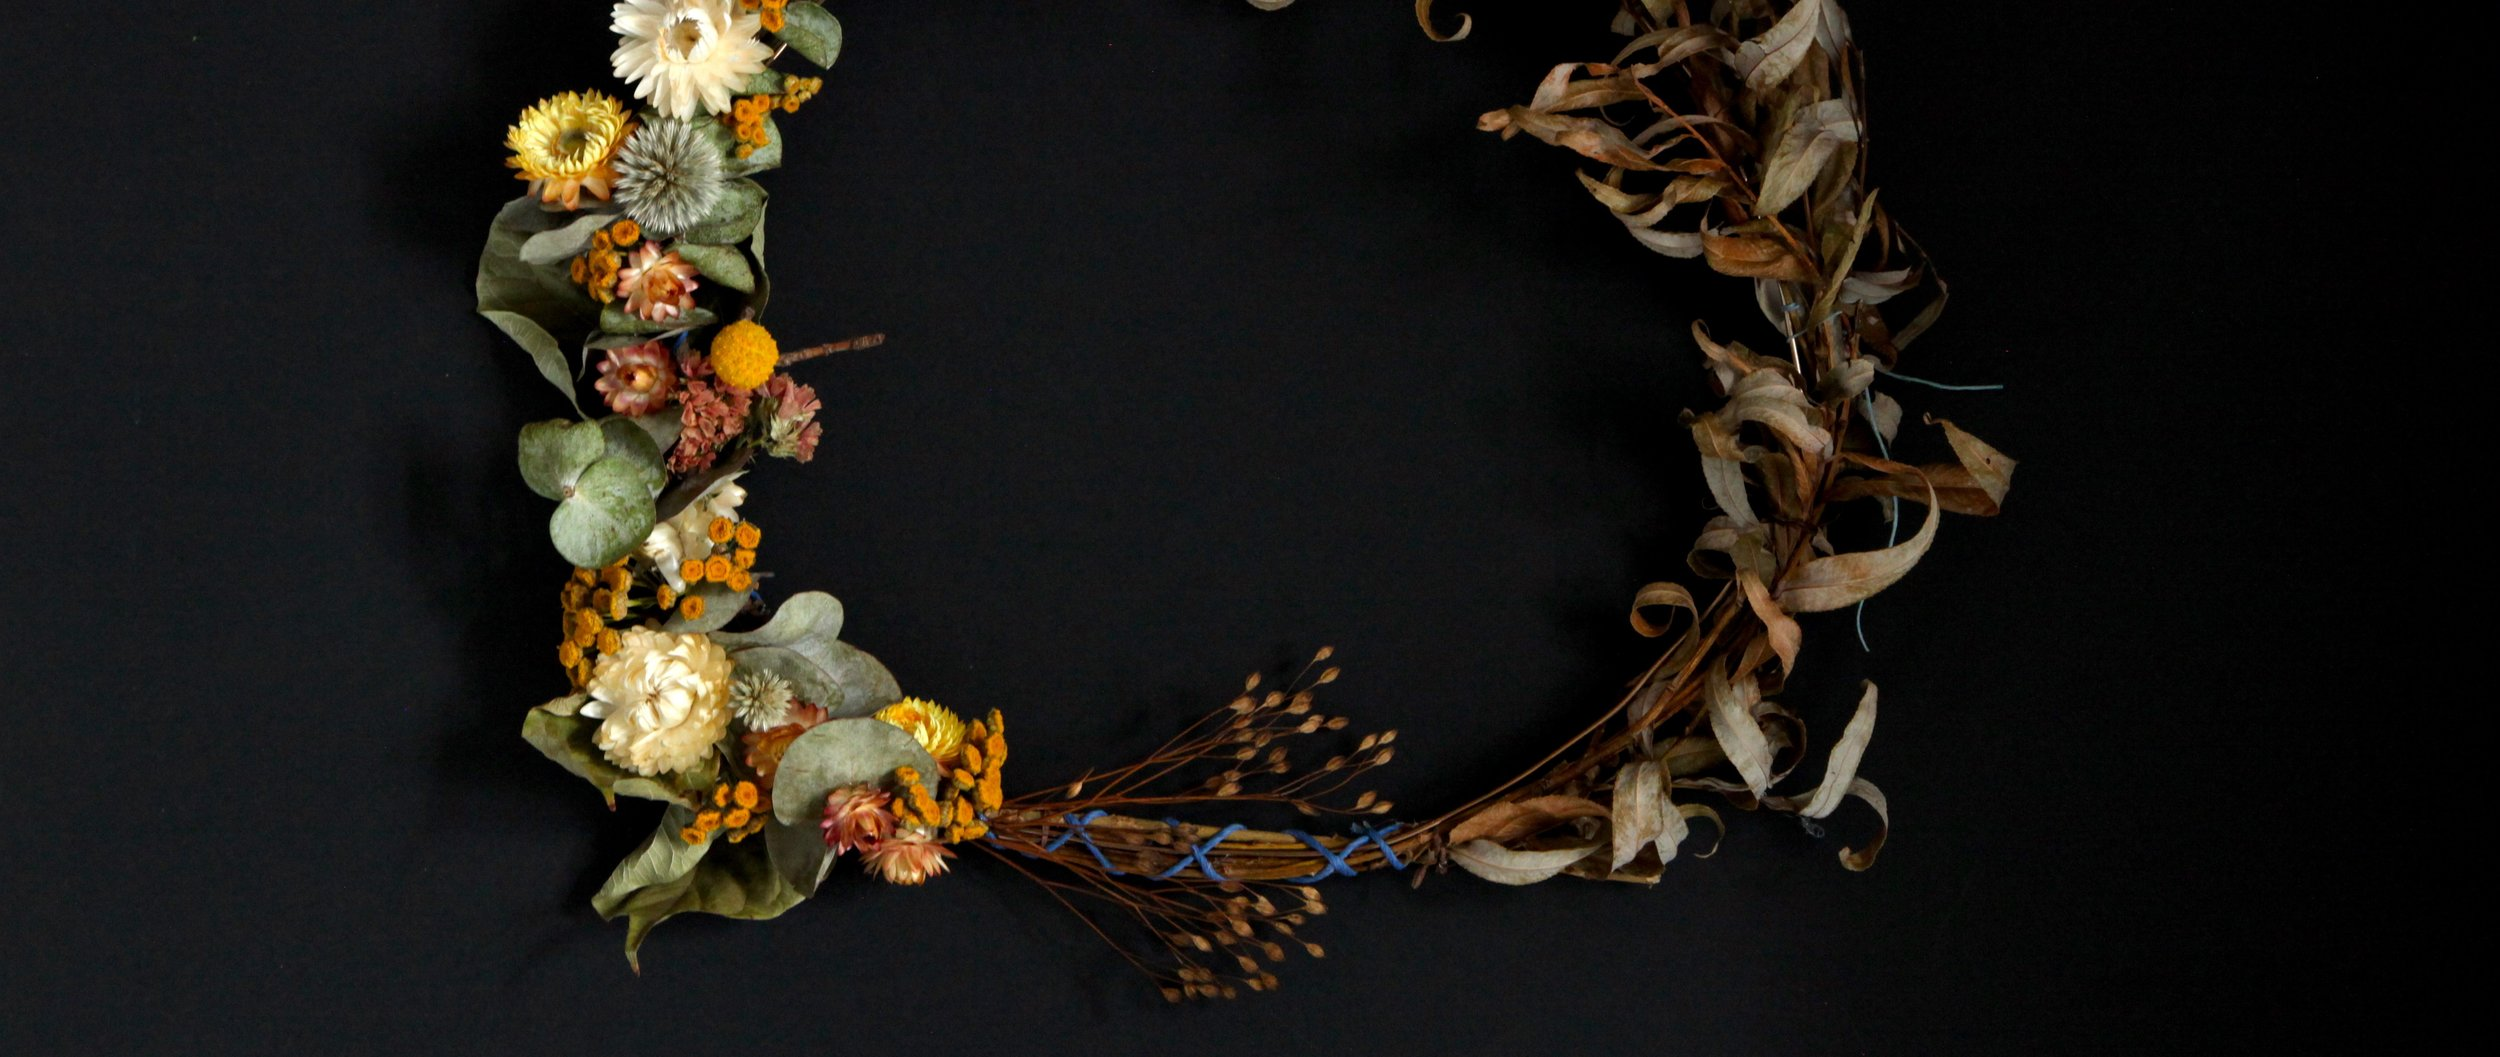 Wreaths - Meditations on time and place